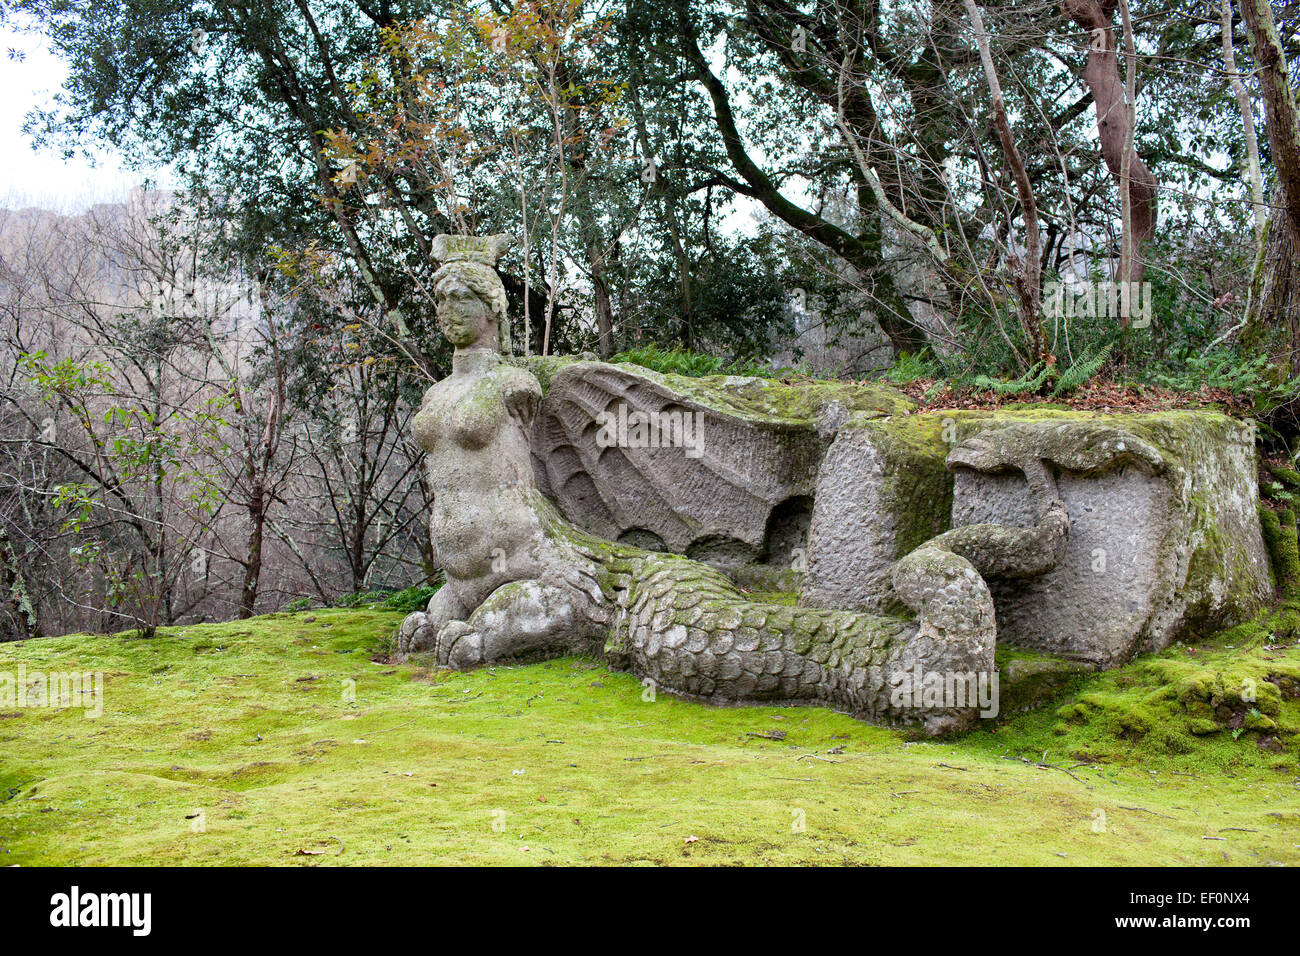 Statue Of Fury, The Park Of Monsters, Bomarzo, Italy - Stock Image